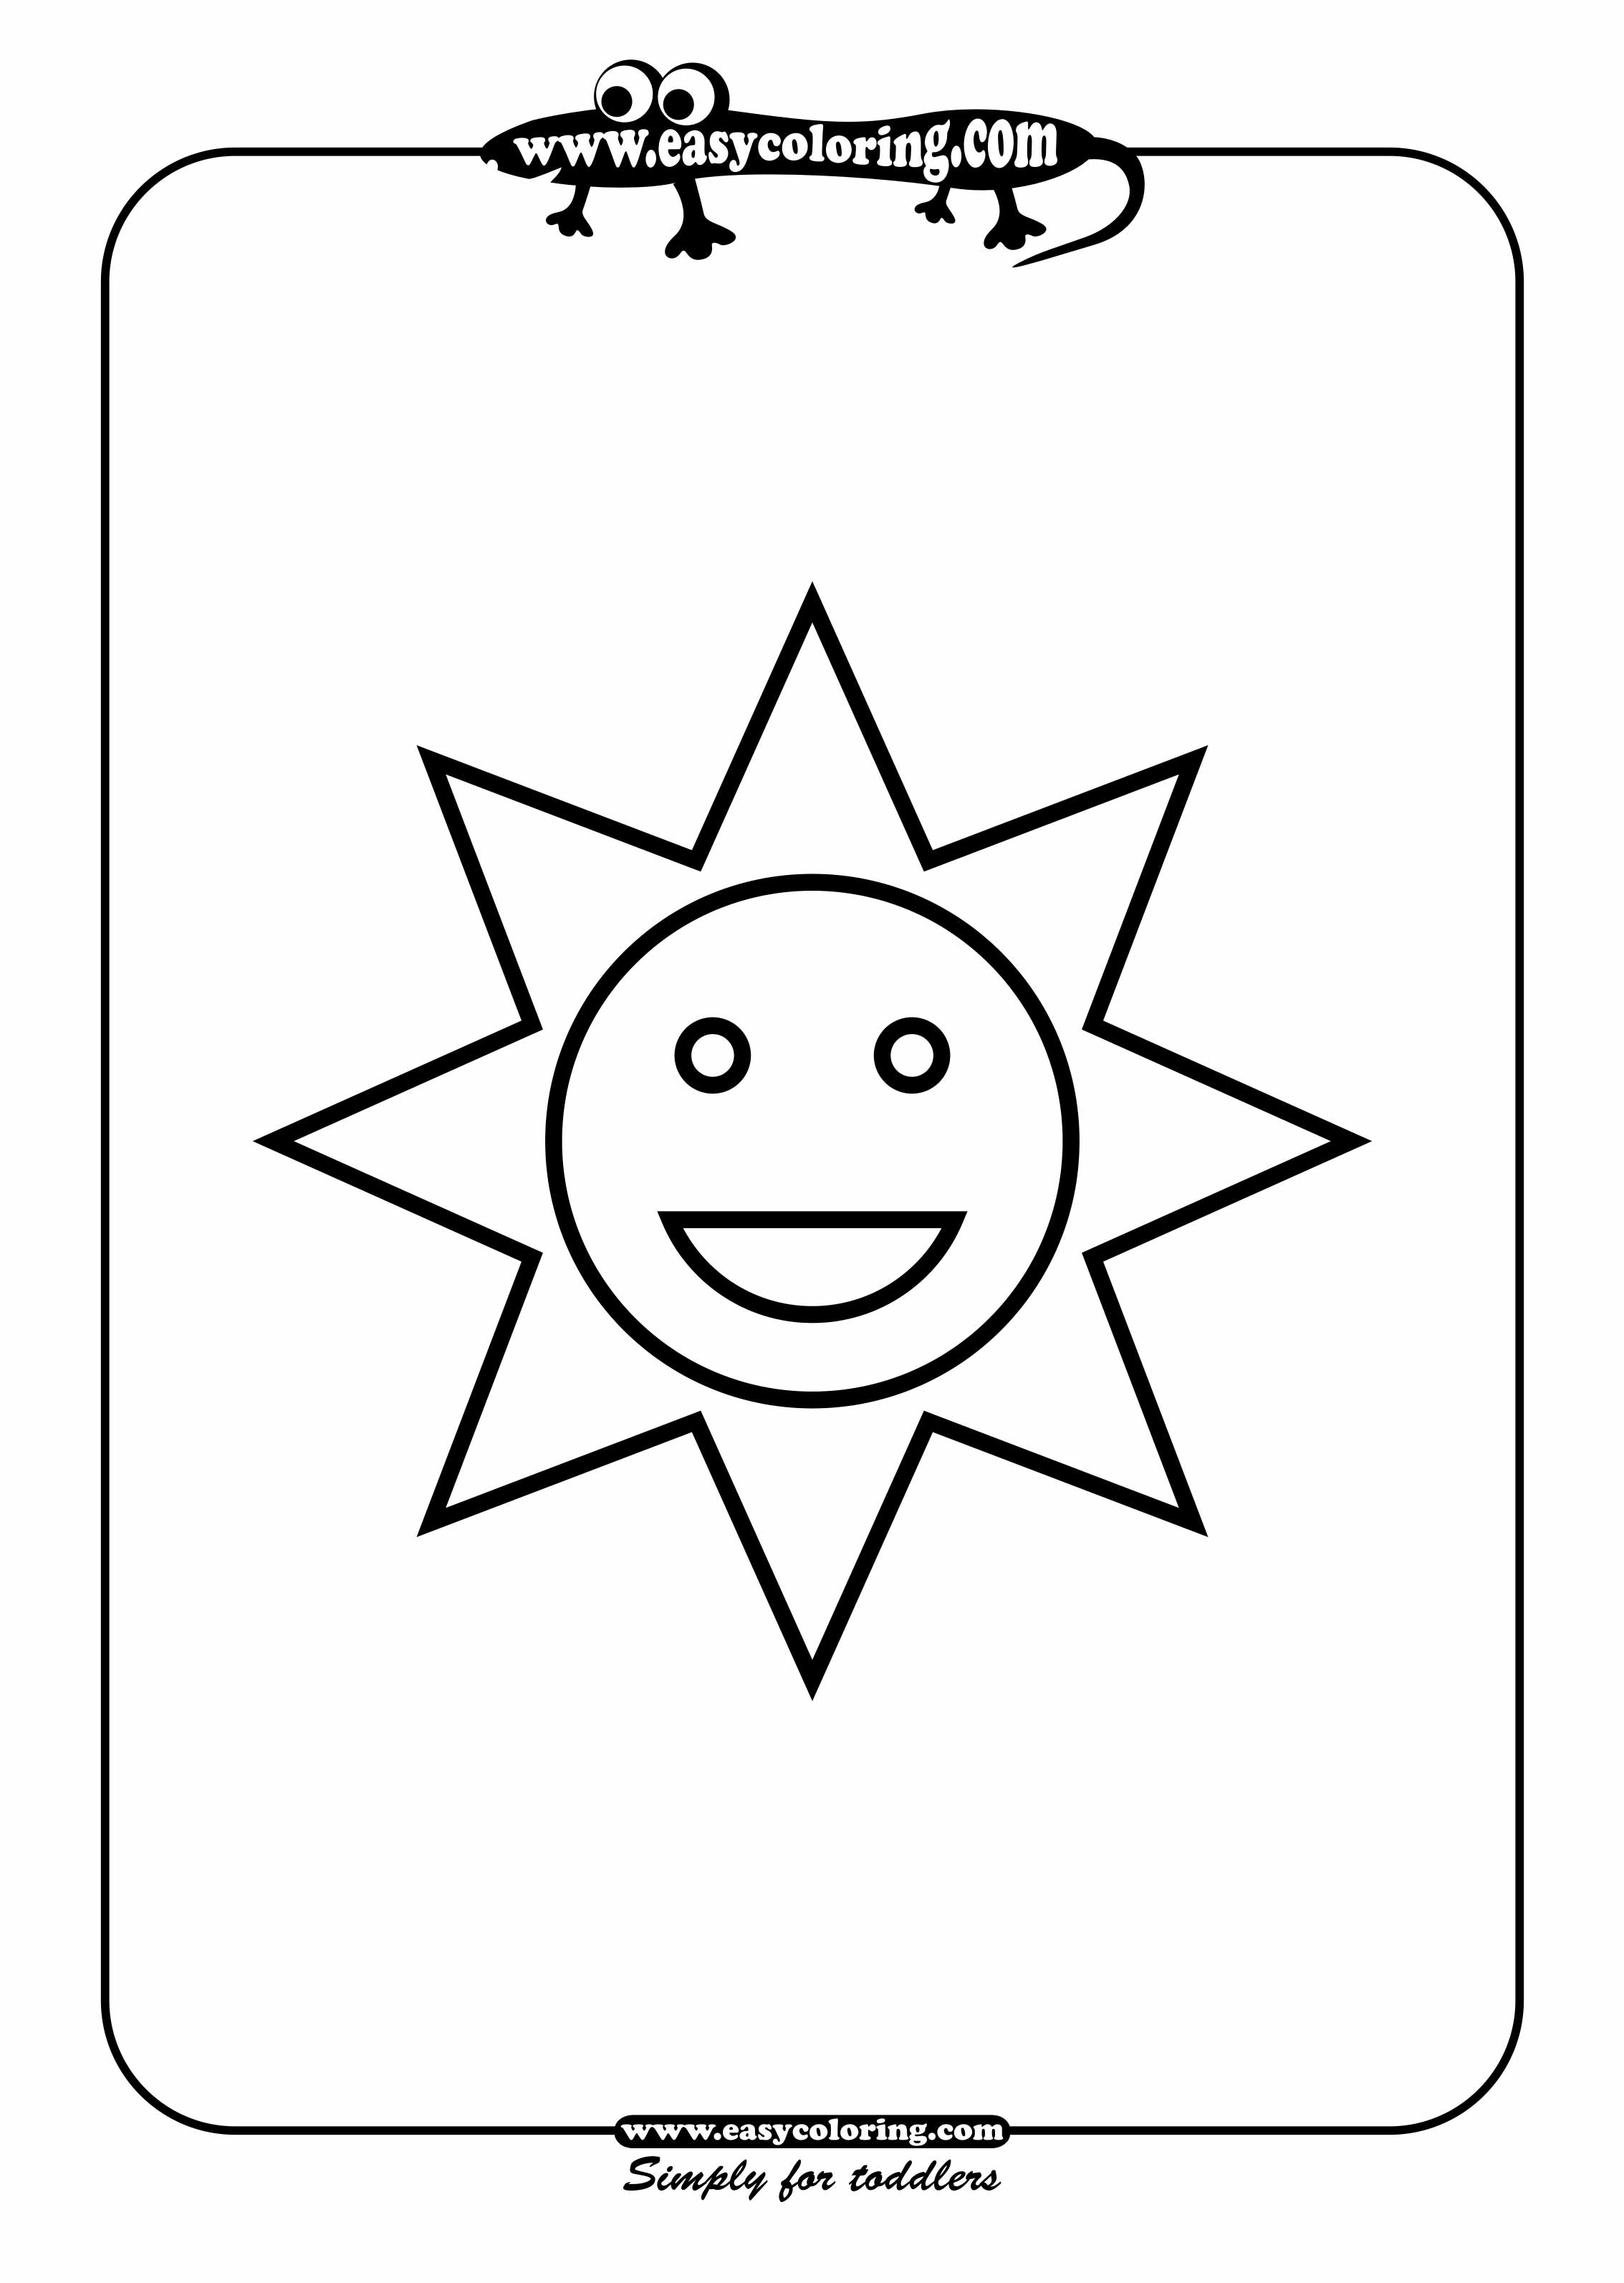 Sun Simple shapes Easy coloring